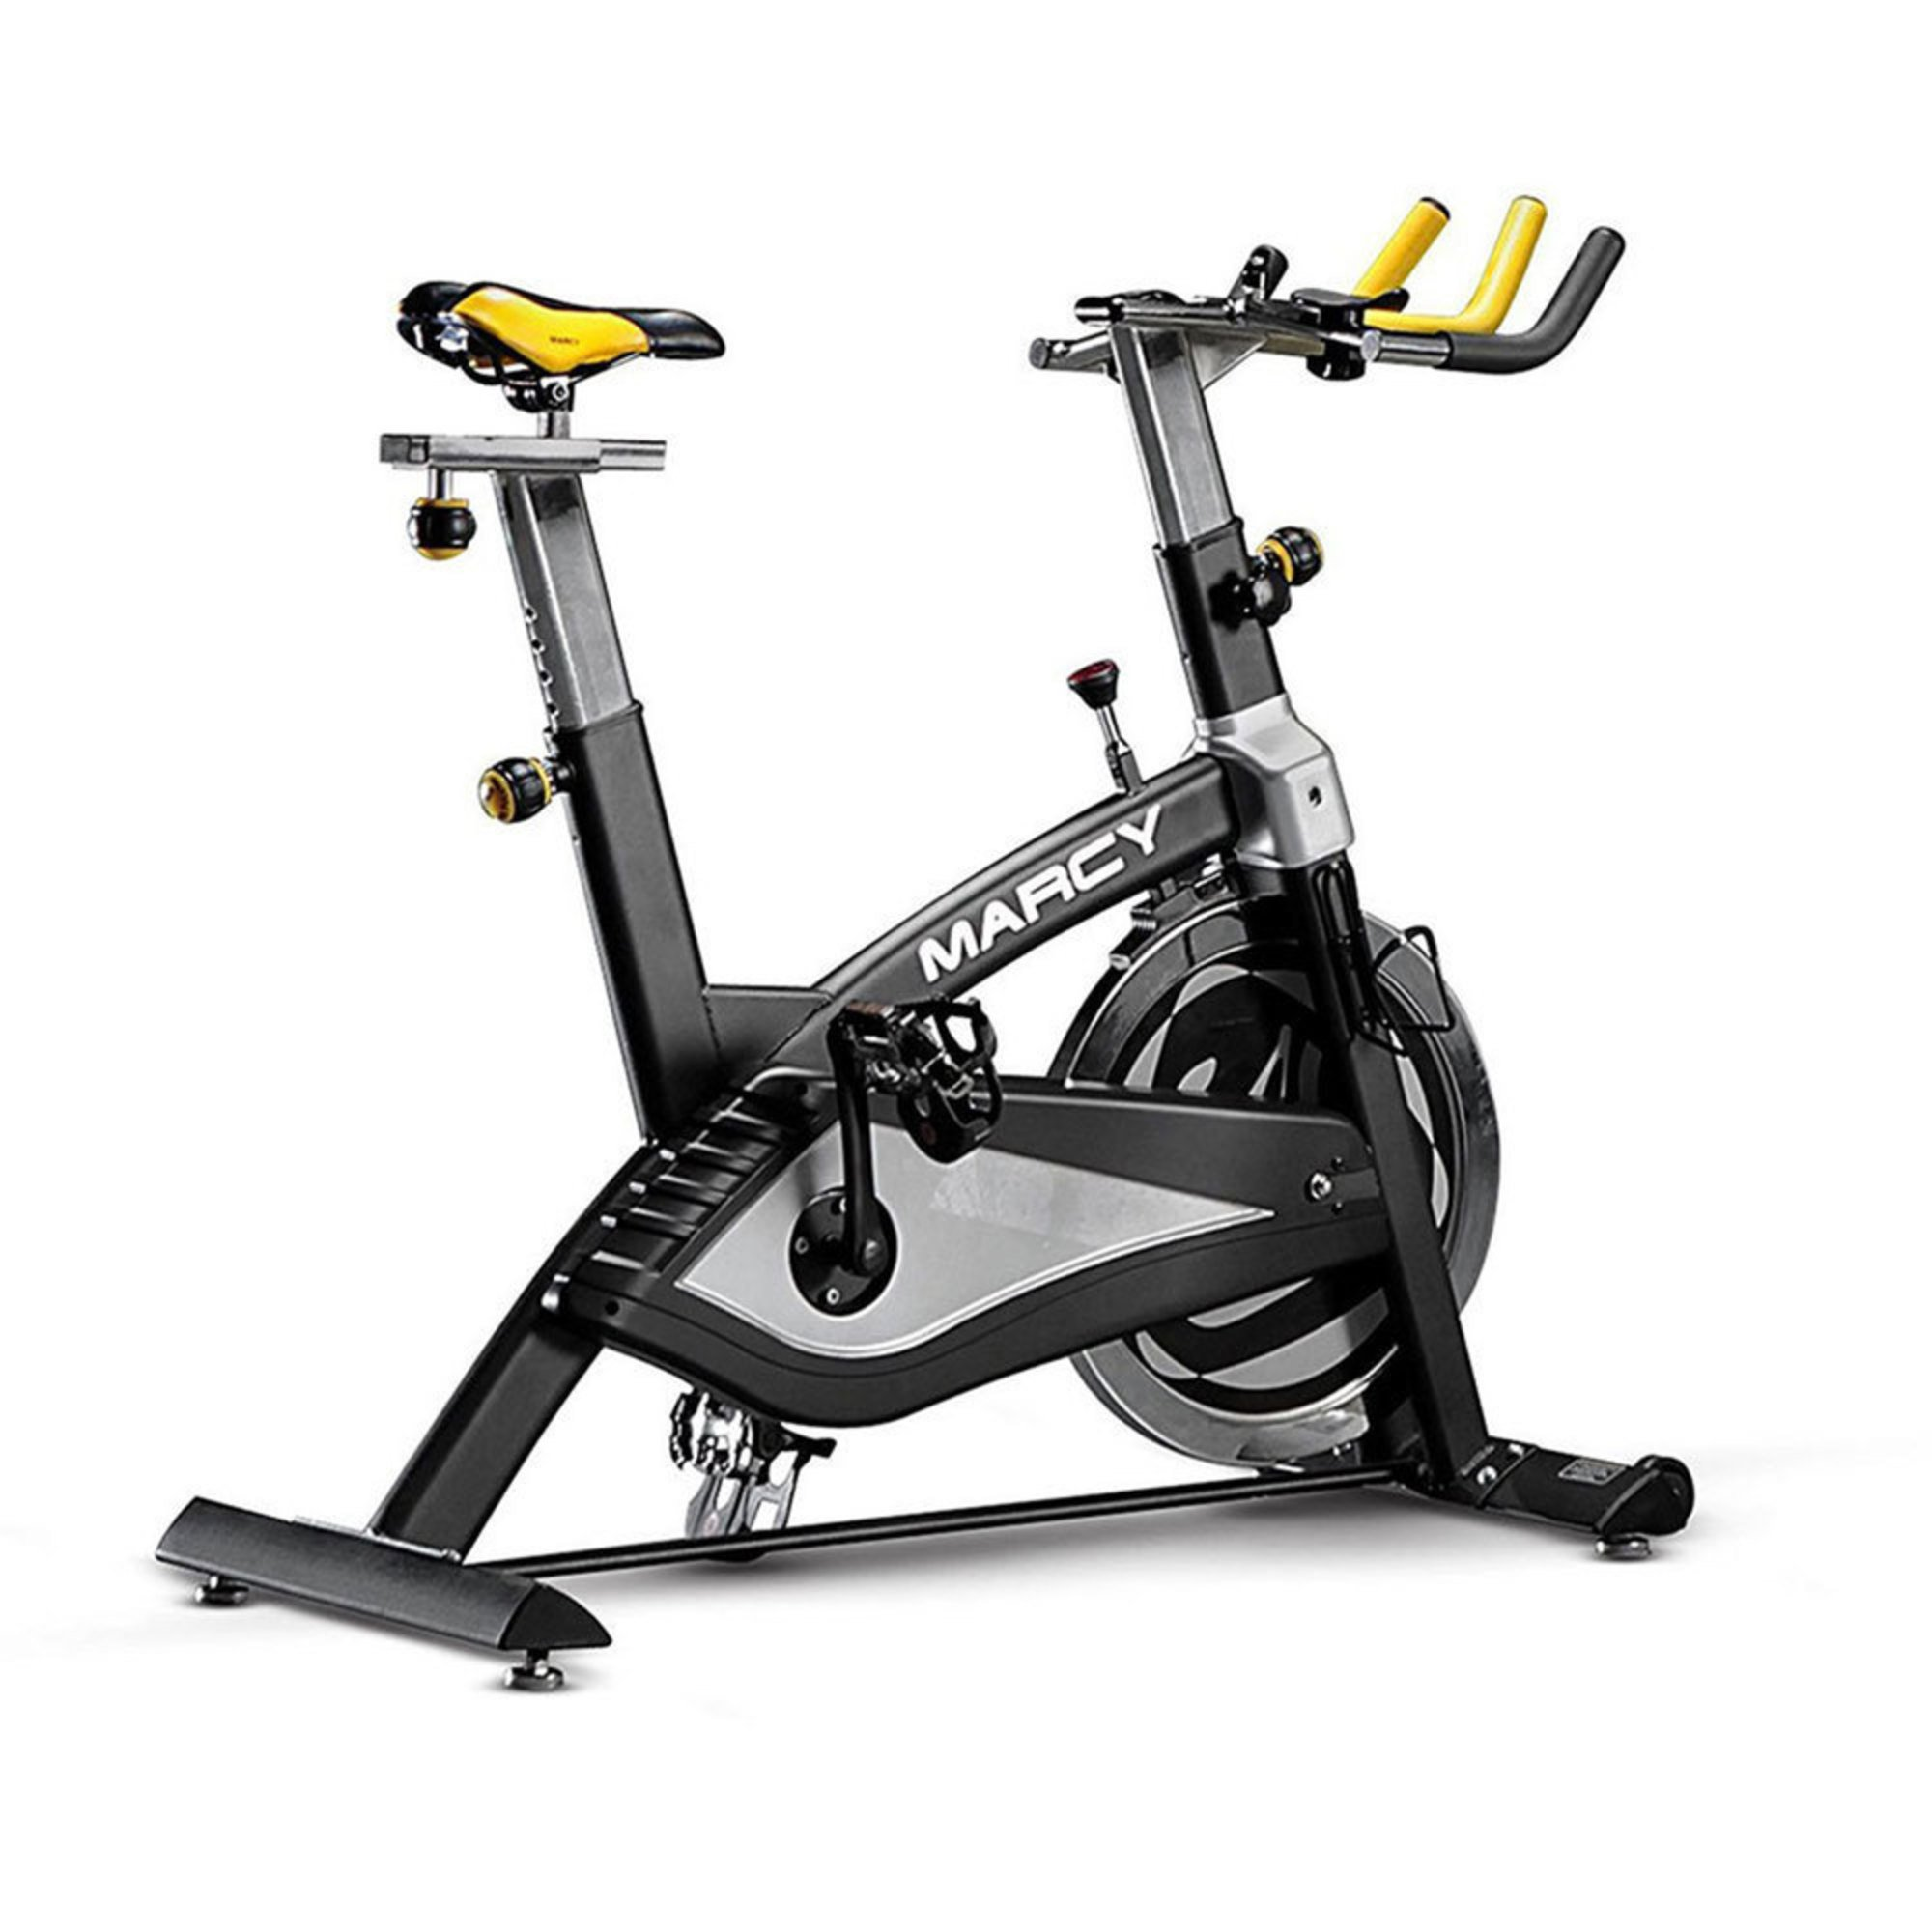 Marcy Revolution Indoor Cycle / Upright Exercise Bike Jx